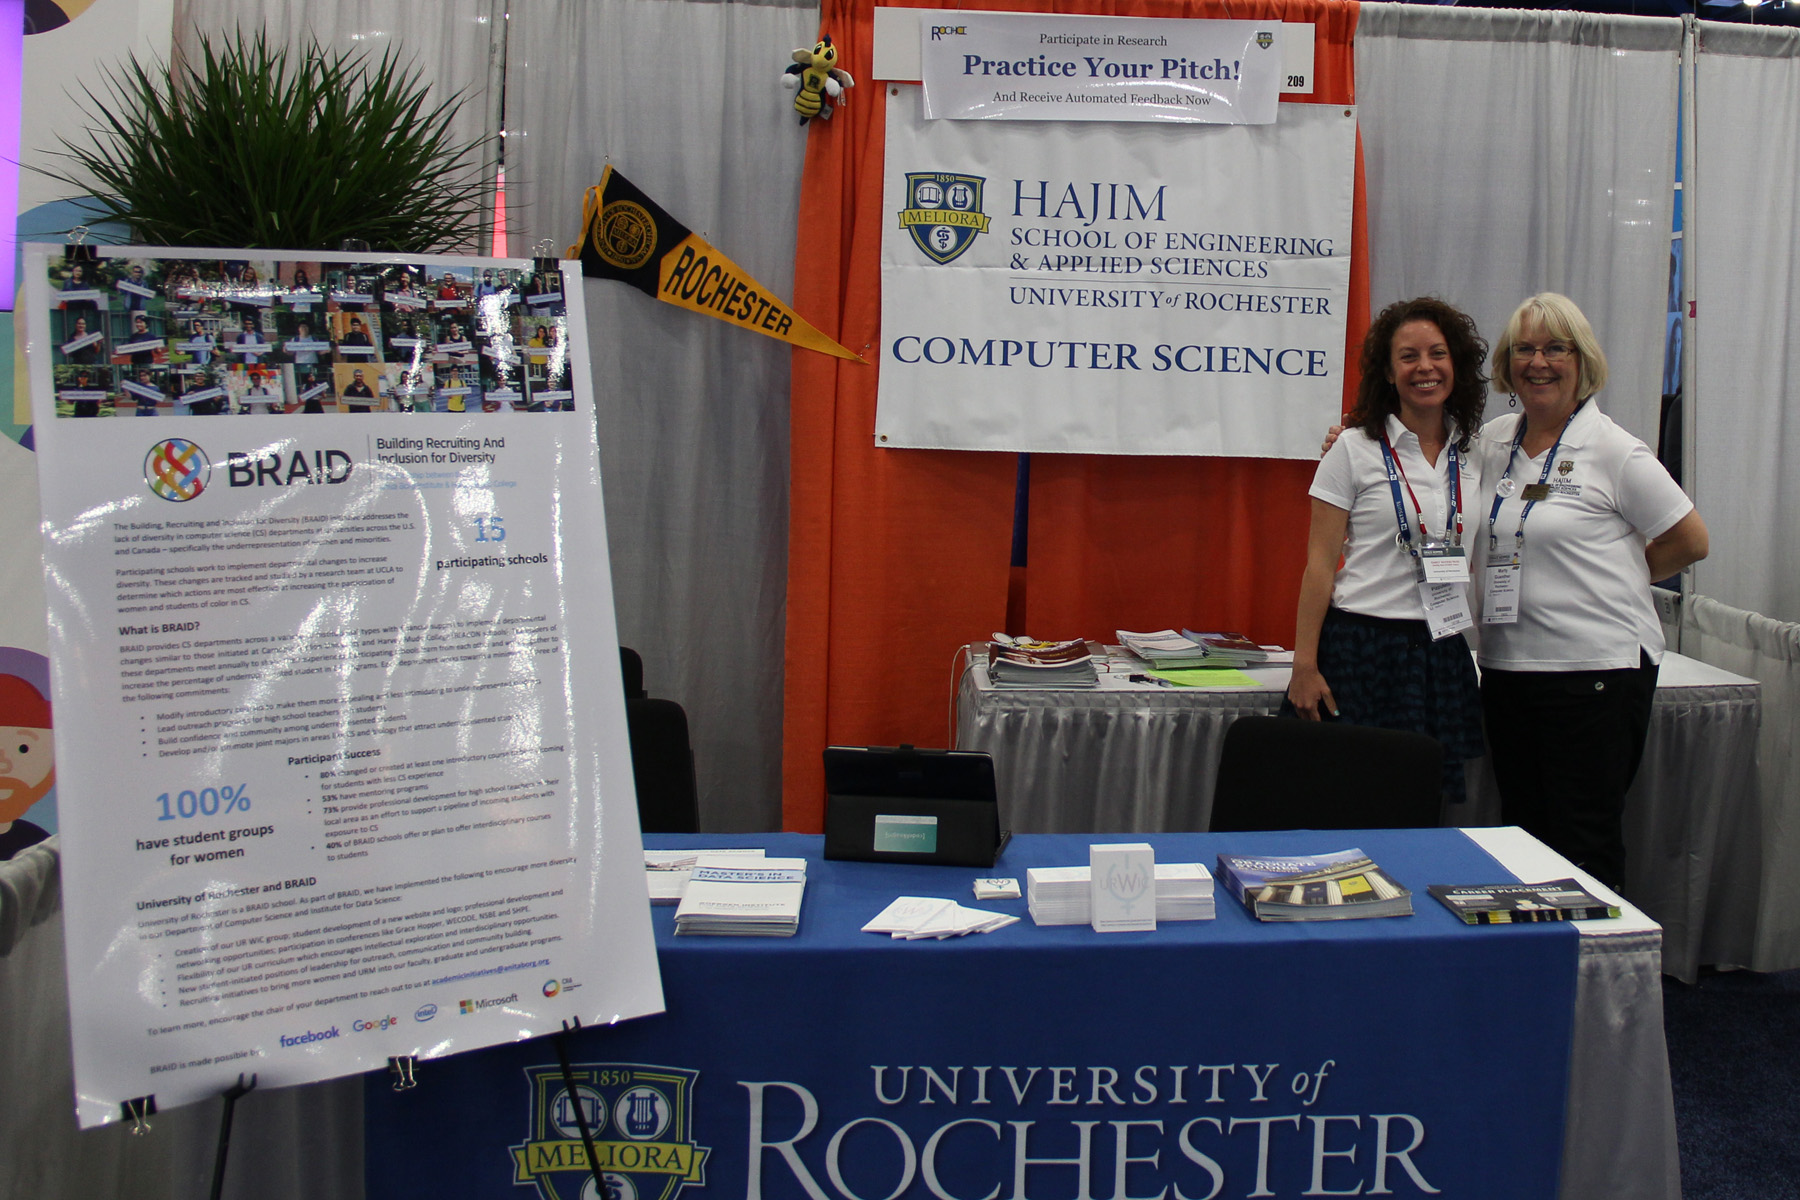 Marty Guenther and Niki Pizzutelli at Career Fair Booth